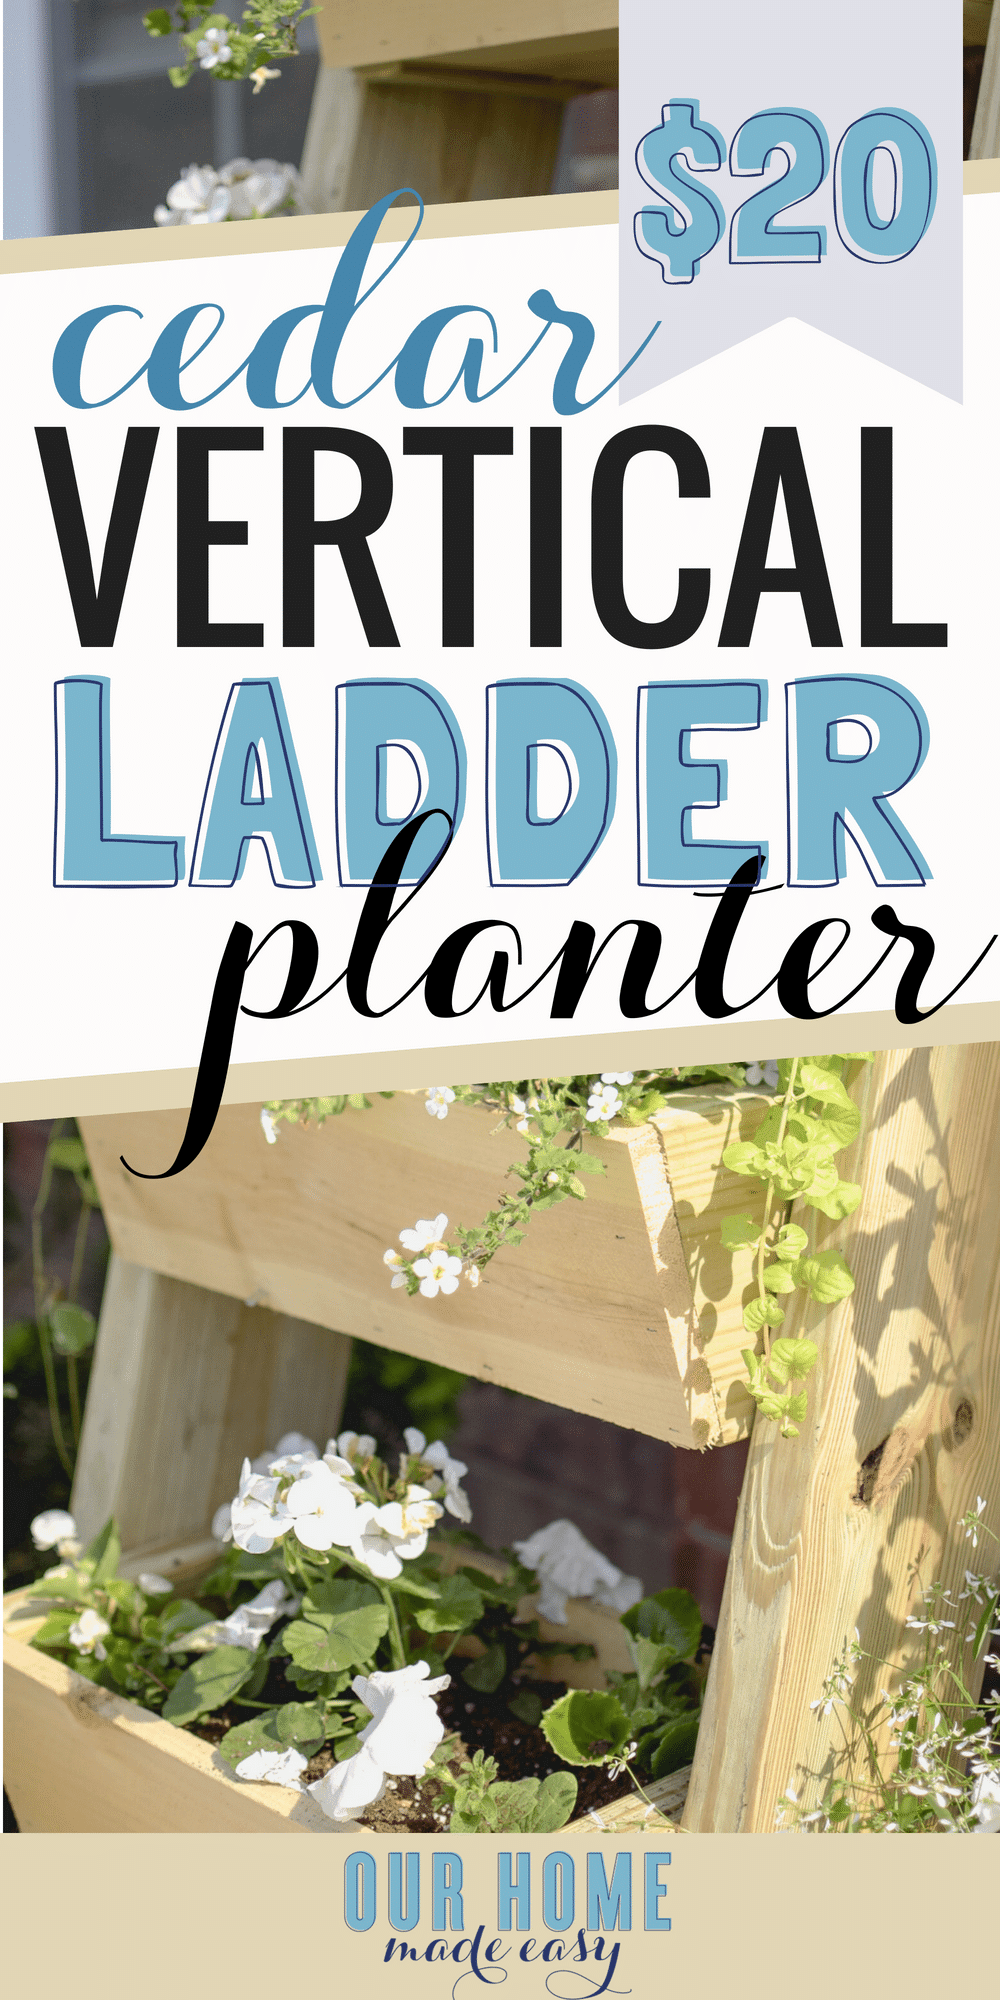 Make this super easy $20 cedar ladder planter! It's perfect for beginner projects and doesn't require many tools! Click to see our tips for building! #anawhite #diy #planter #flowers #home